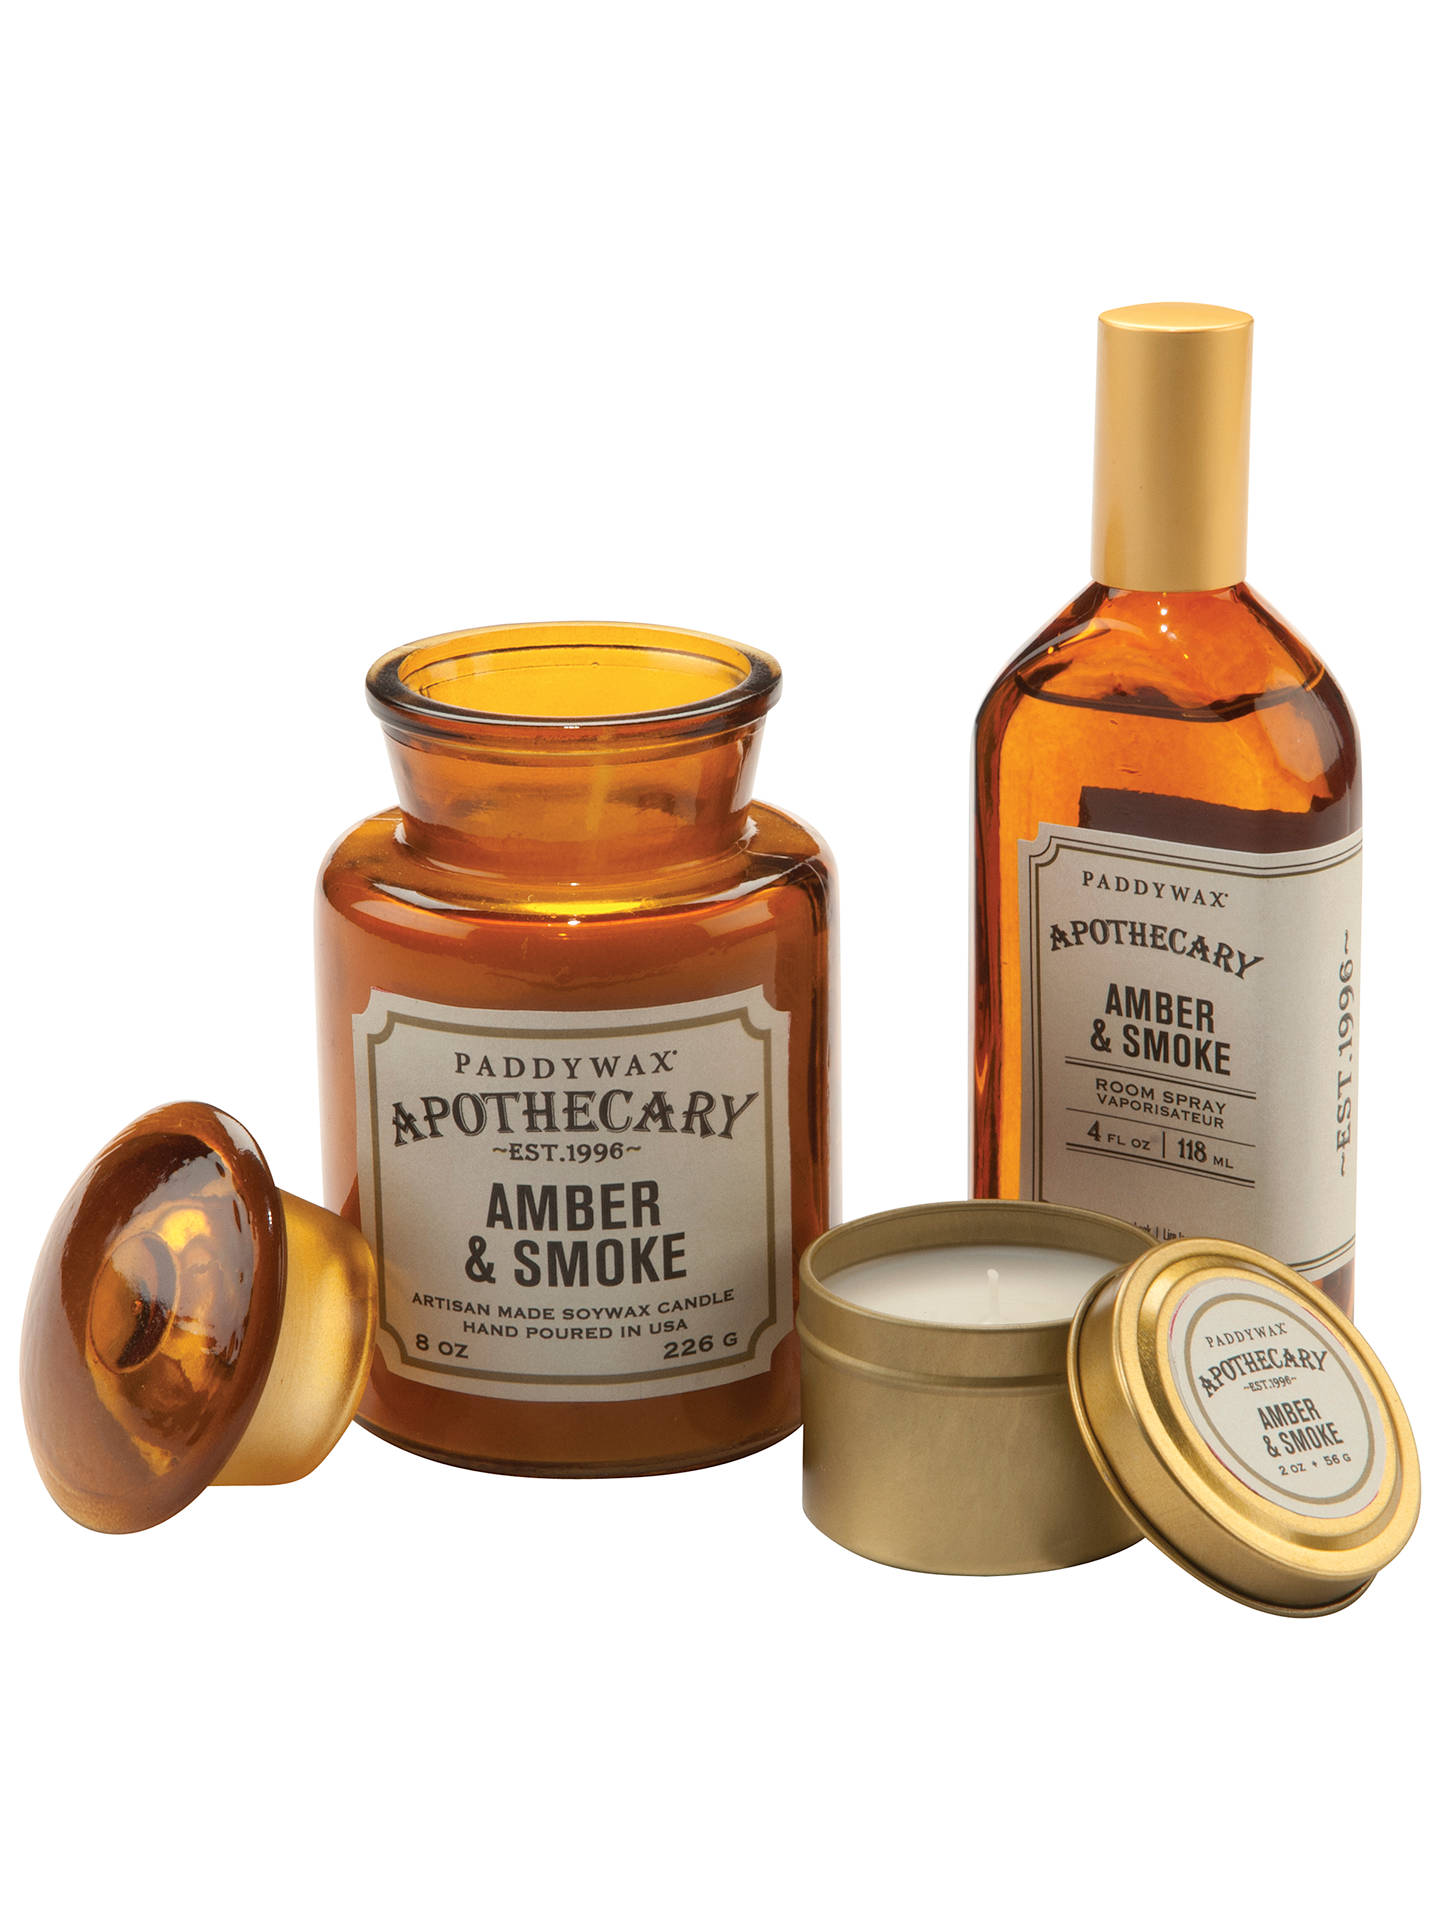 Paddywax Apothecary Amber and Smoke Scented Candle at John ...